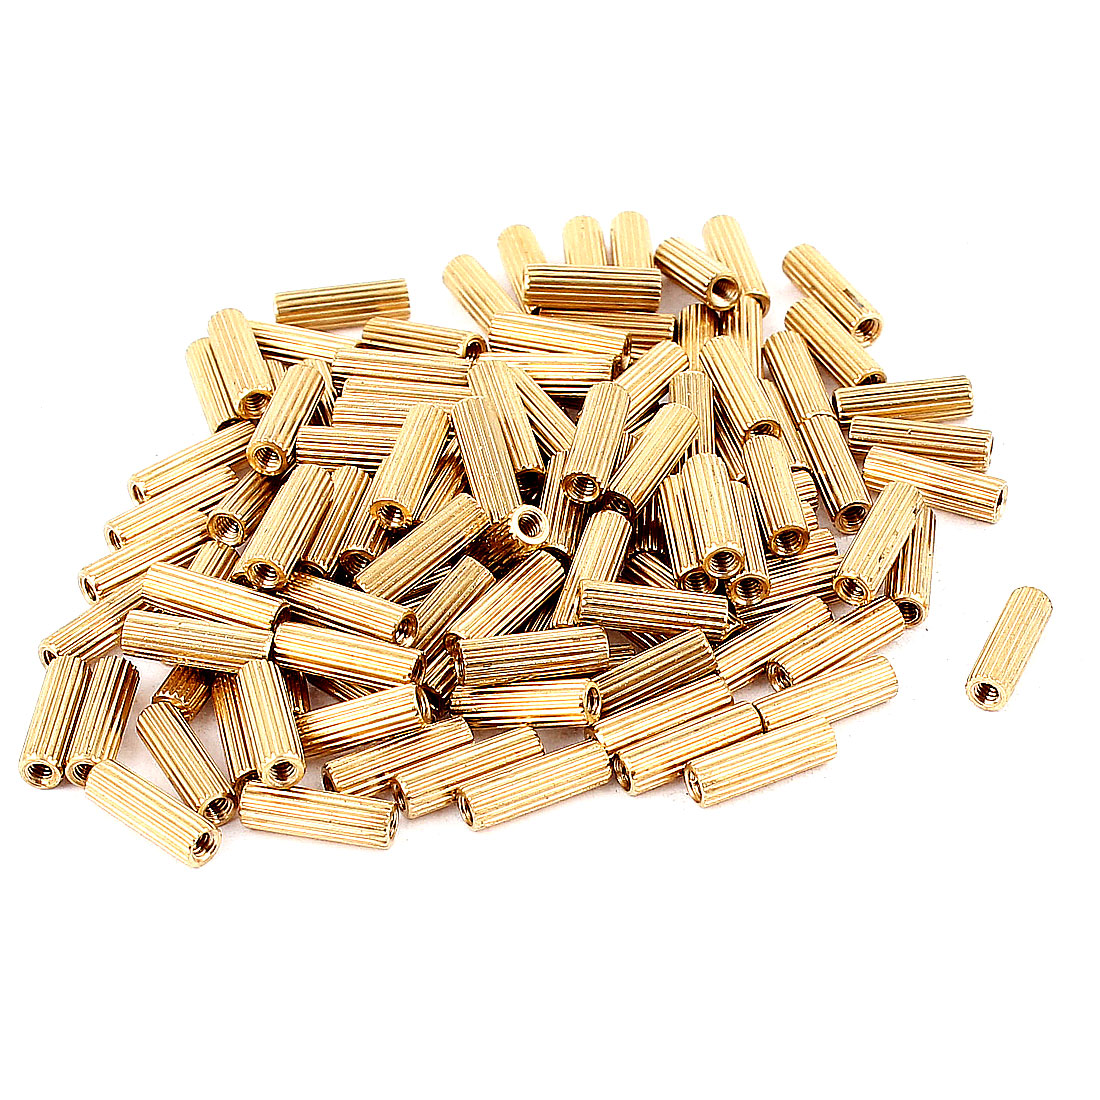 100pcs M2x10mm Female Knurling Brass Standoff Spacer Pillar for PCB Motherboard